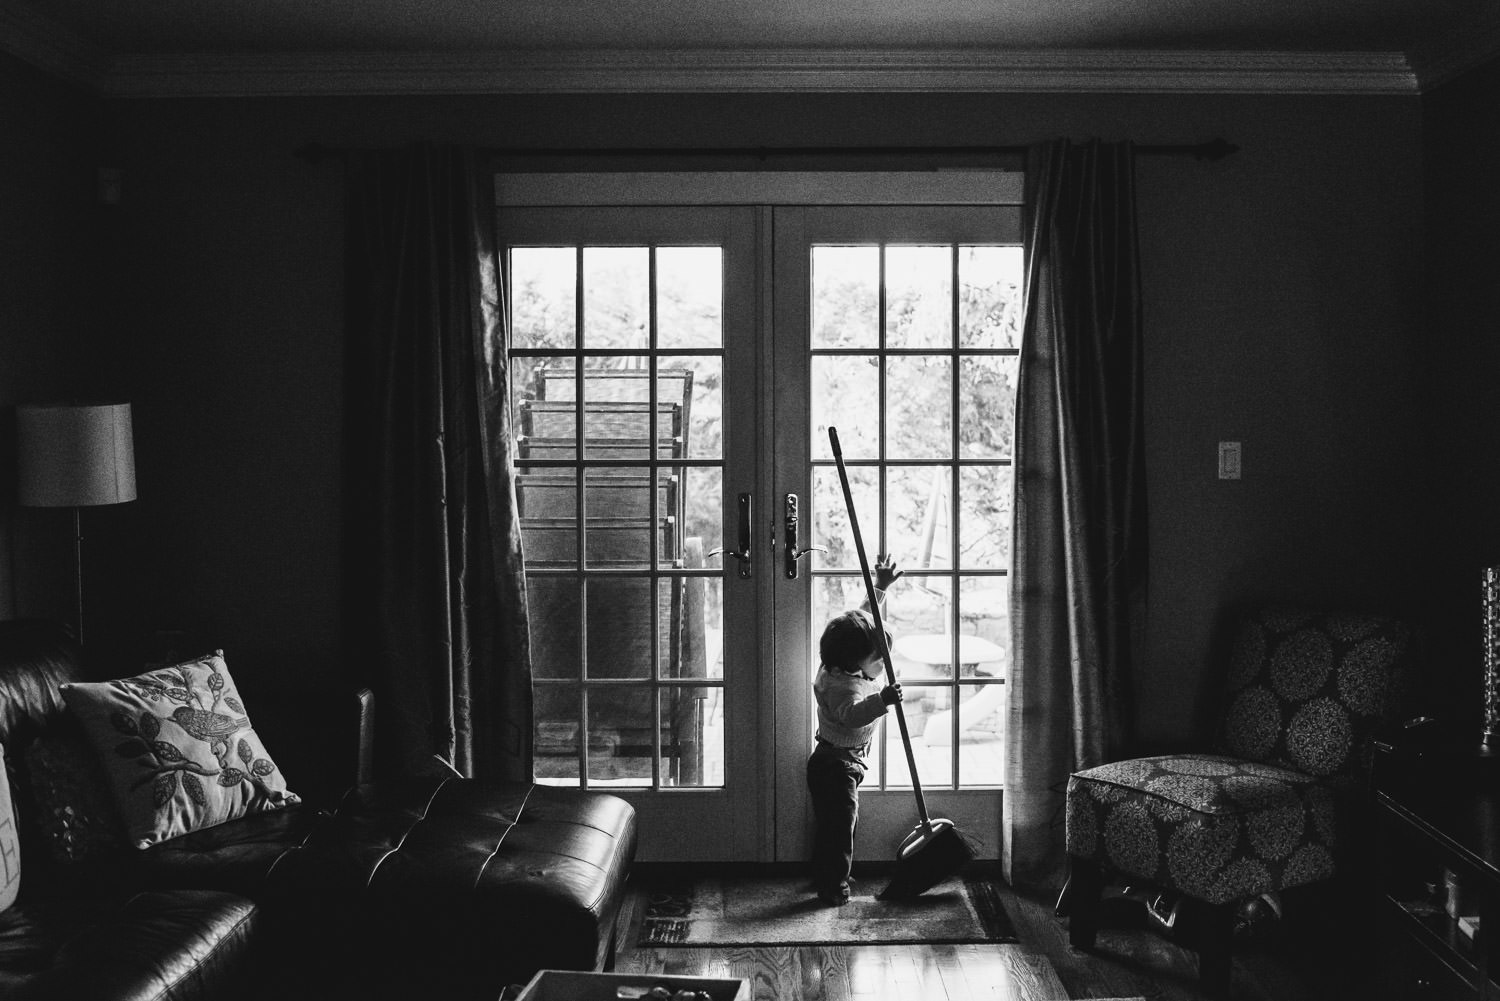 A silhouette of a toddler boy mopping in front of some french doors.